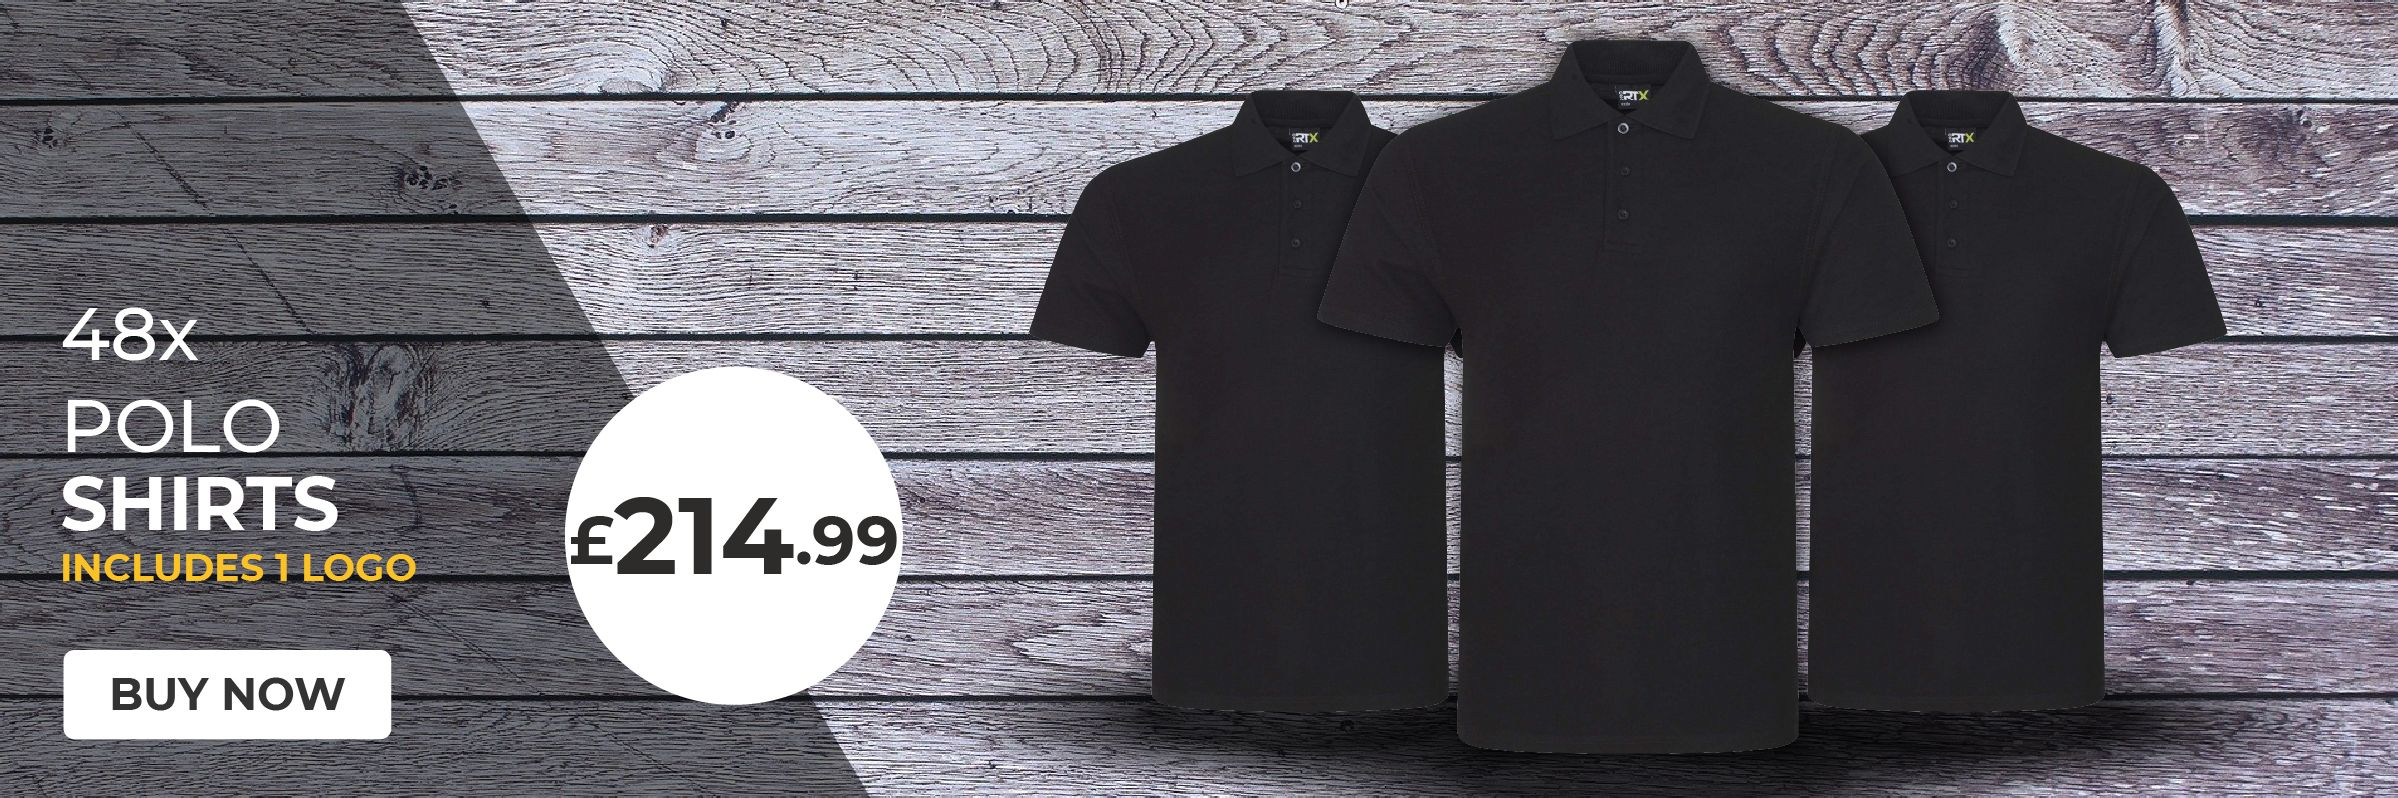 48 x Polo Shirts JUST £214.99